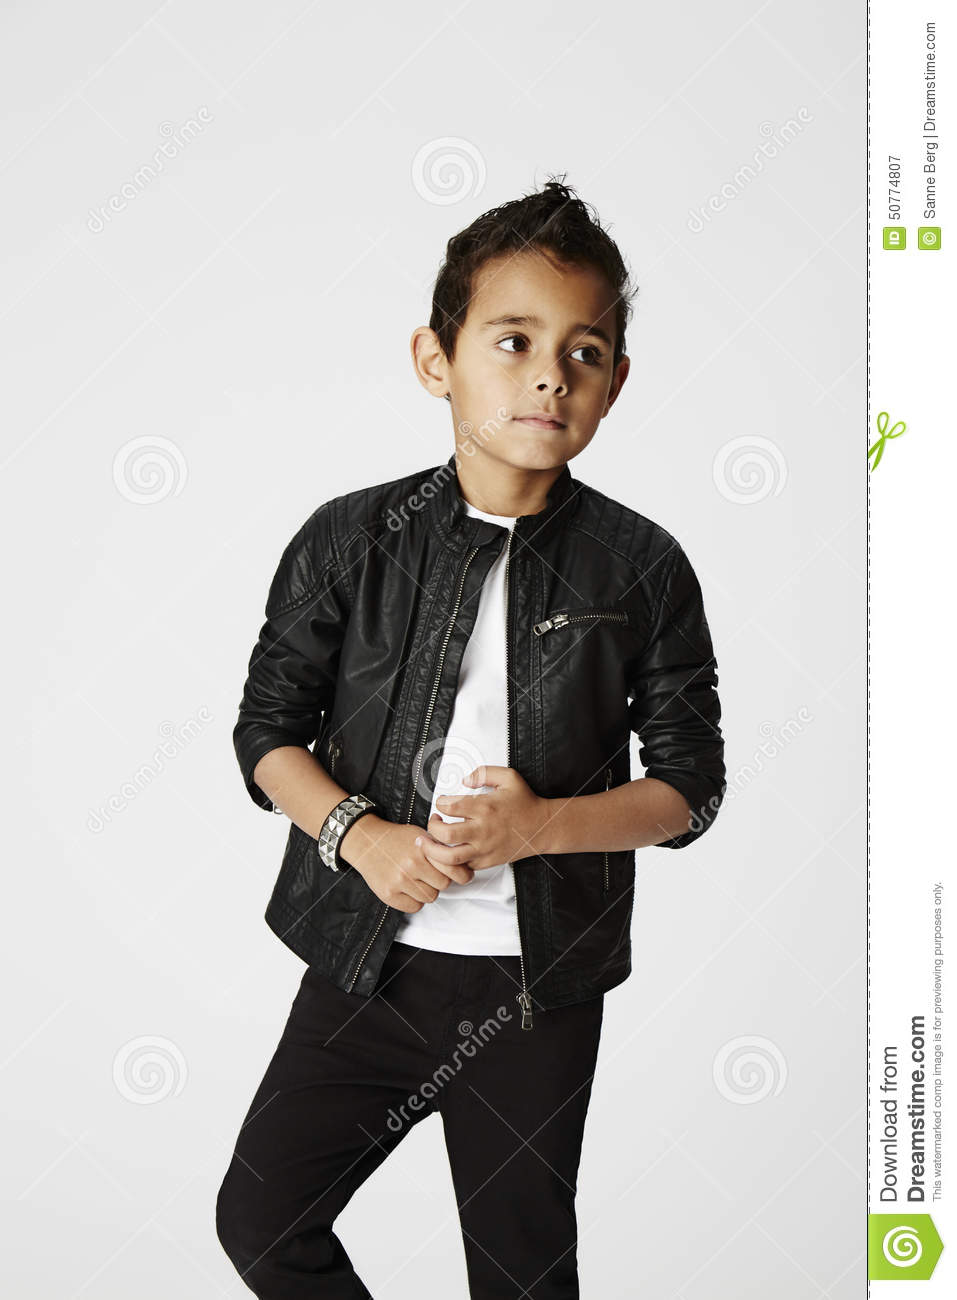 Cool Leather Jackets For Boys images